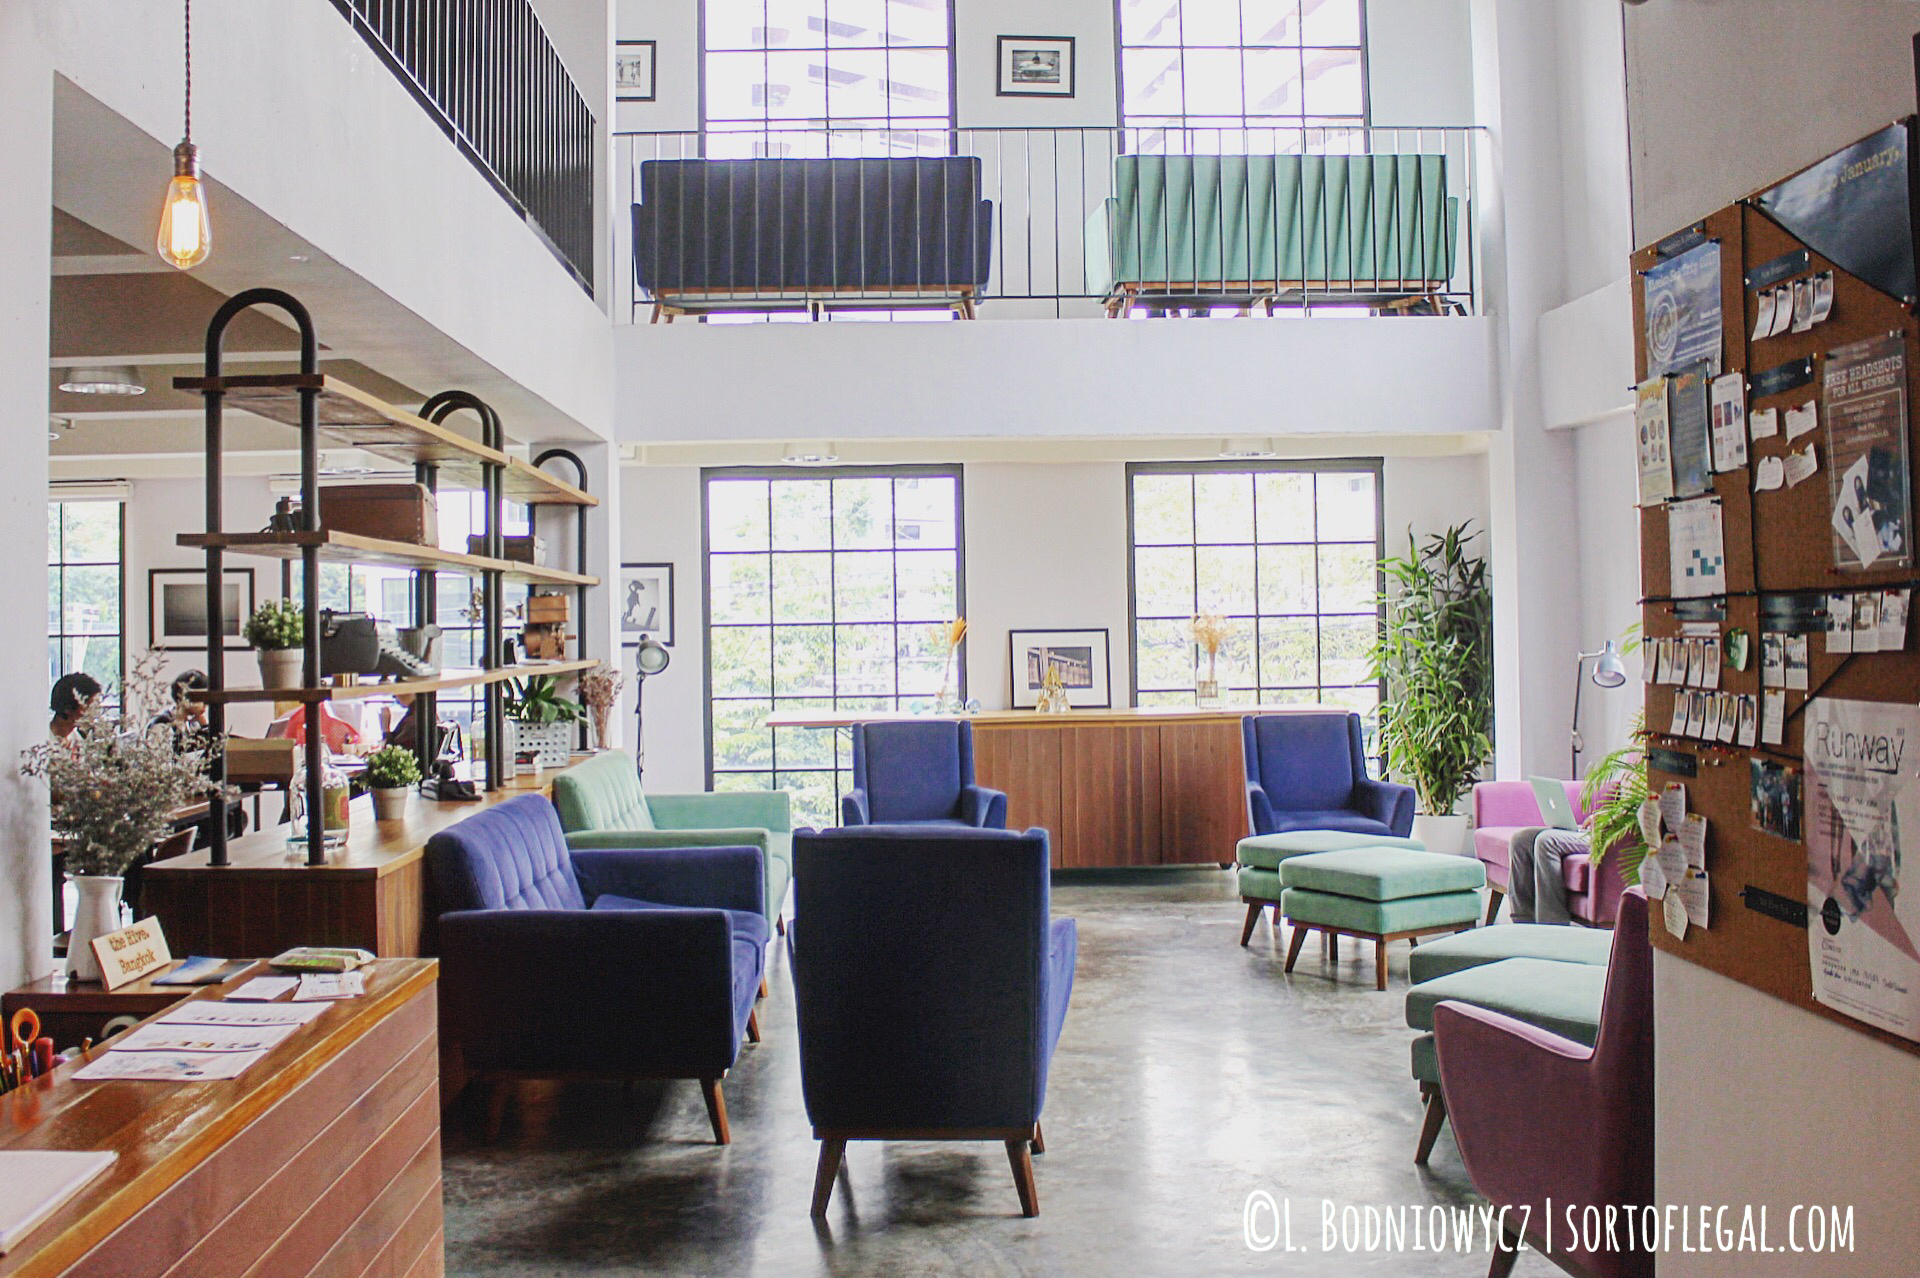 Four Asian Cities, Four Very Different Co-Working Spaces - Sort of Legal